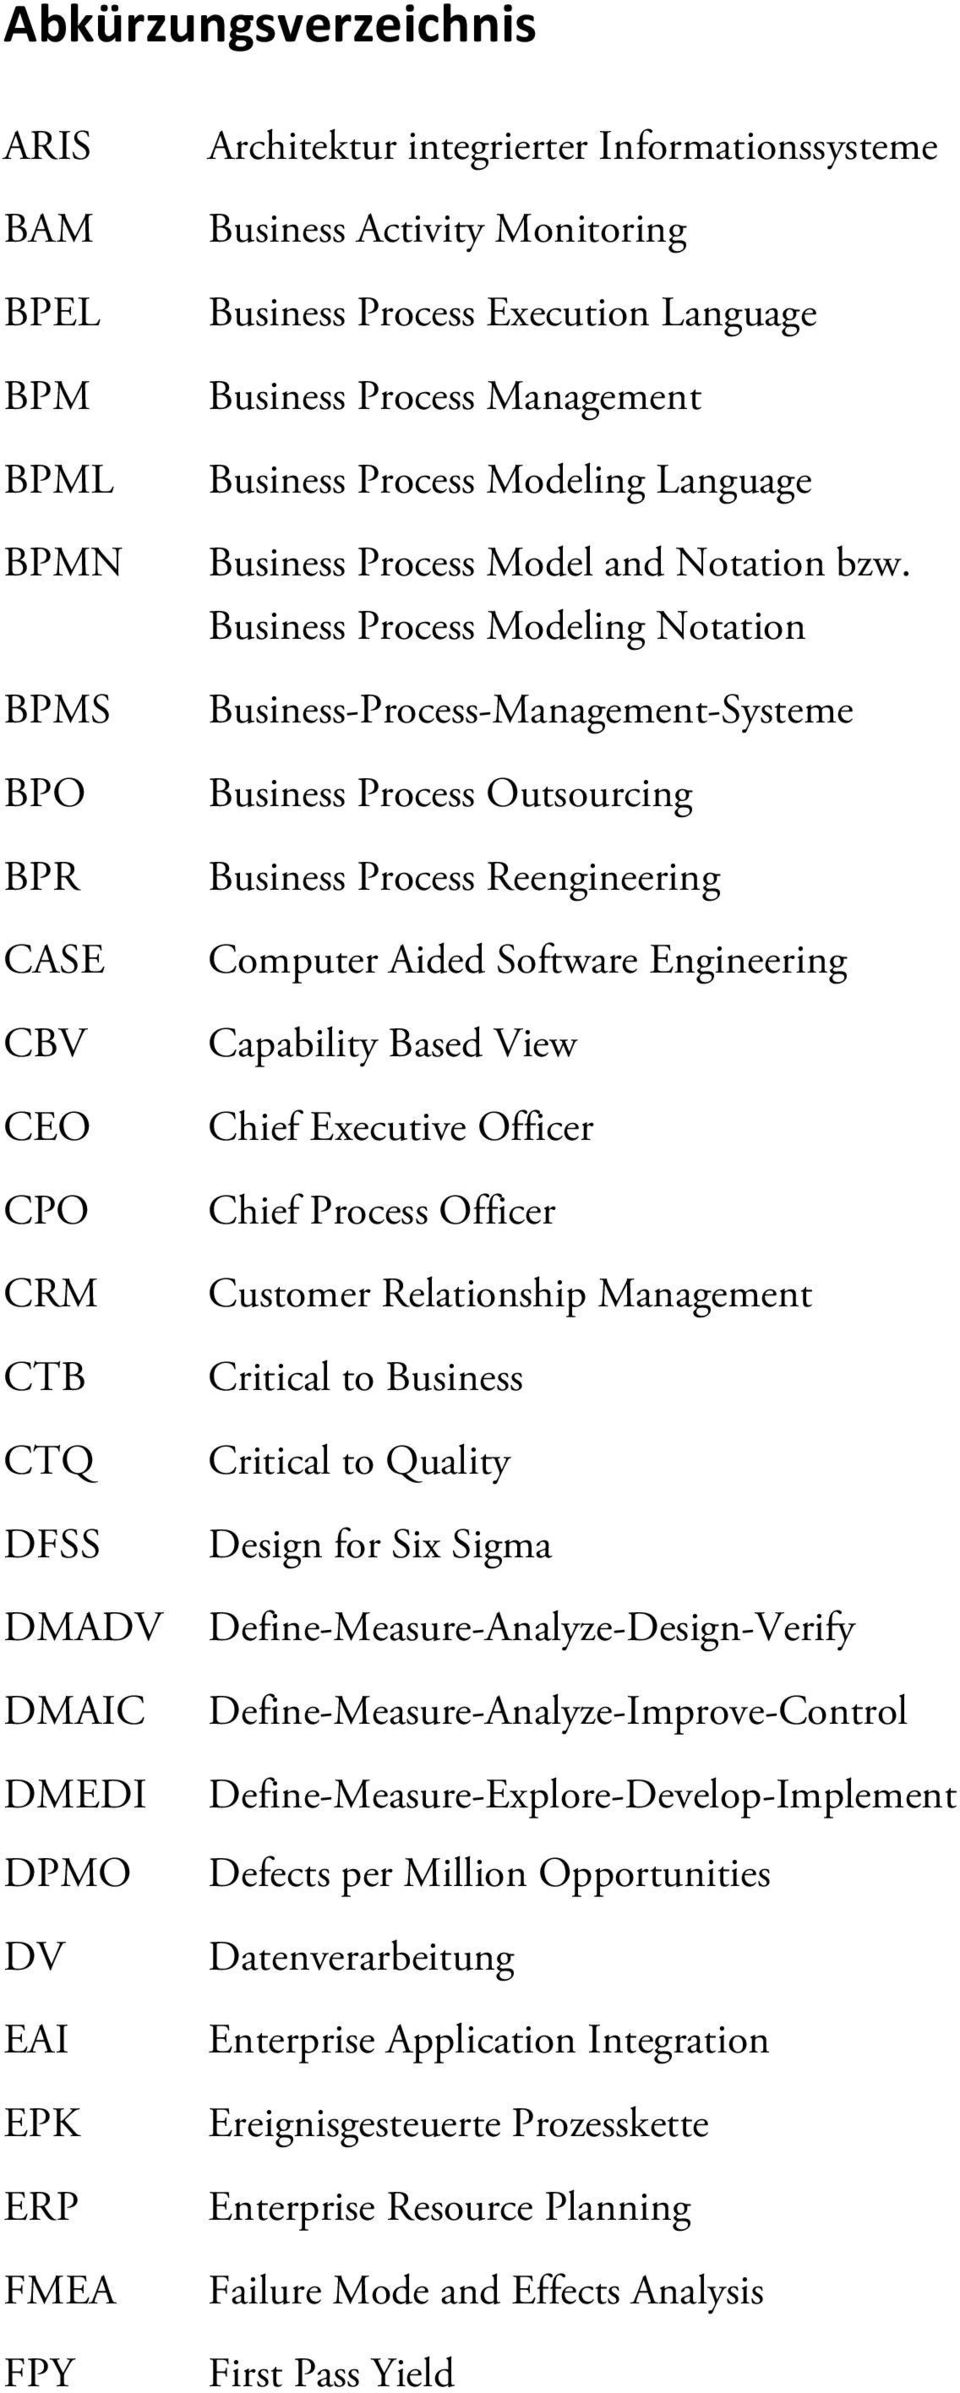 Business Process Modeling Notation Business-Process-Management-Systeme Business Process Outsourcing Business Process Reengineering Computer Aided Software Engineering Capability Based View Chief